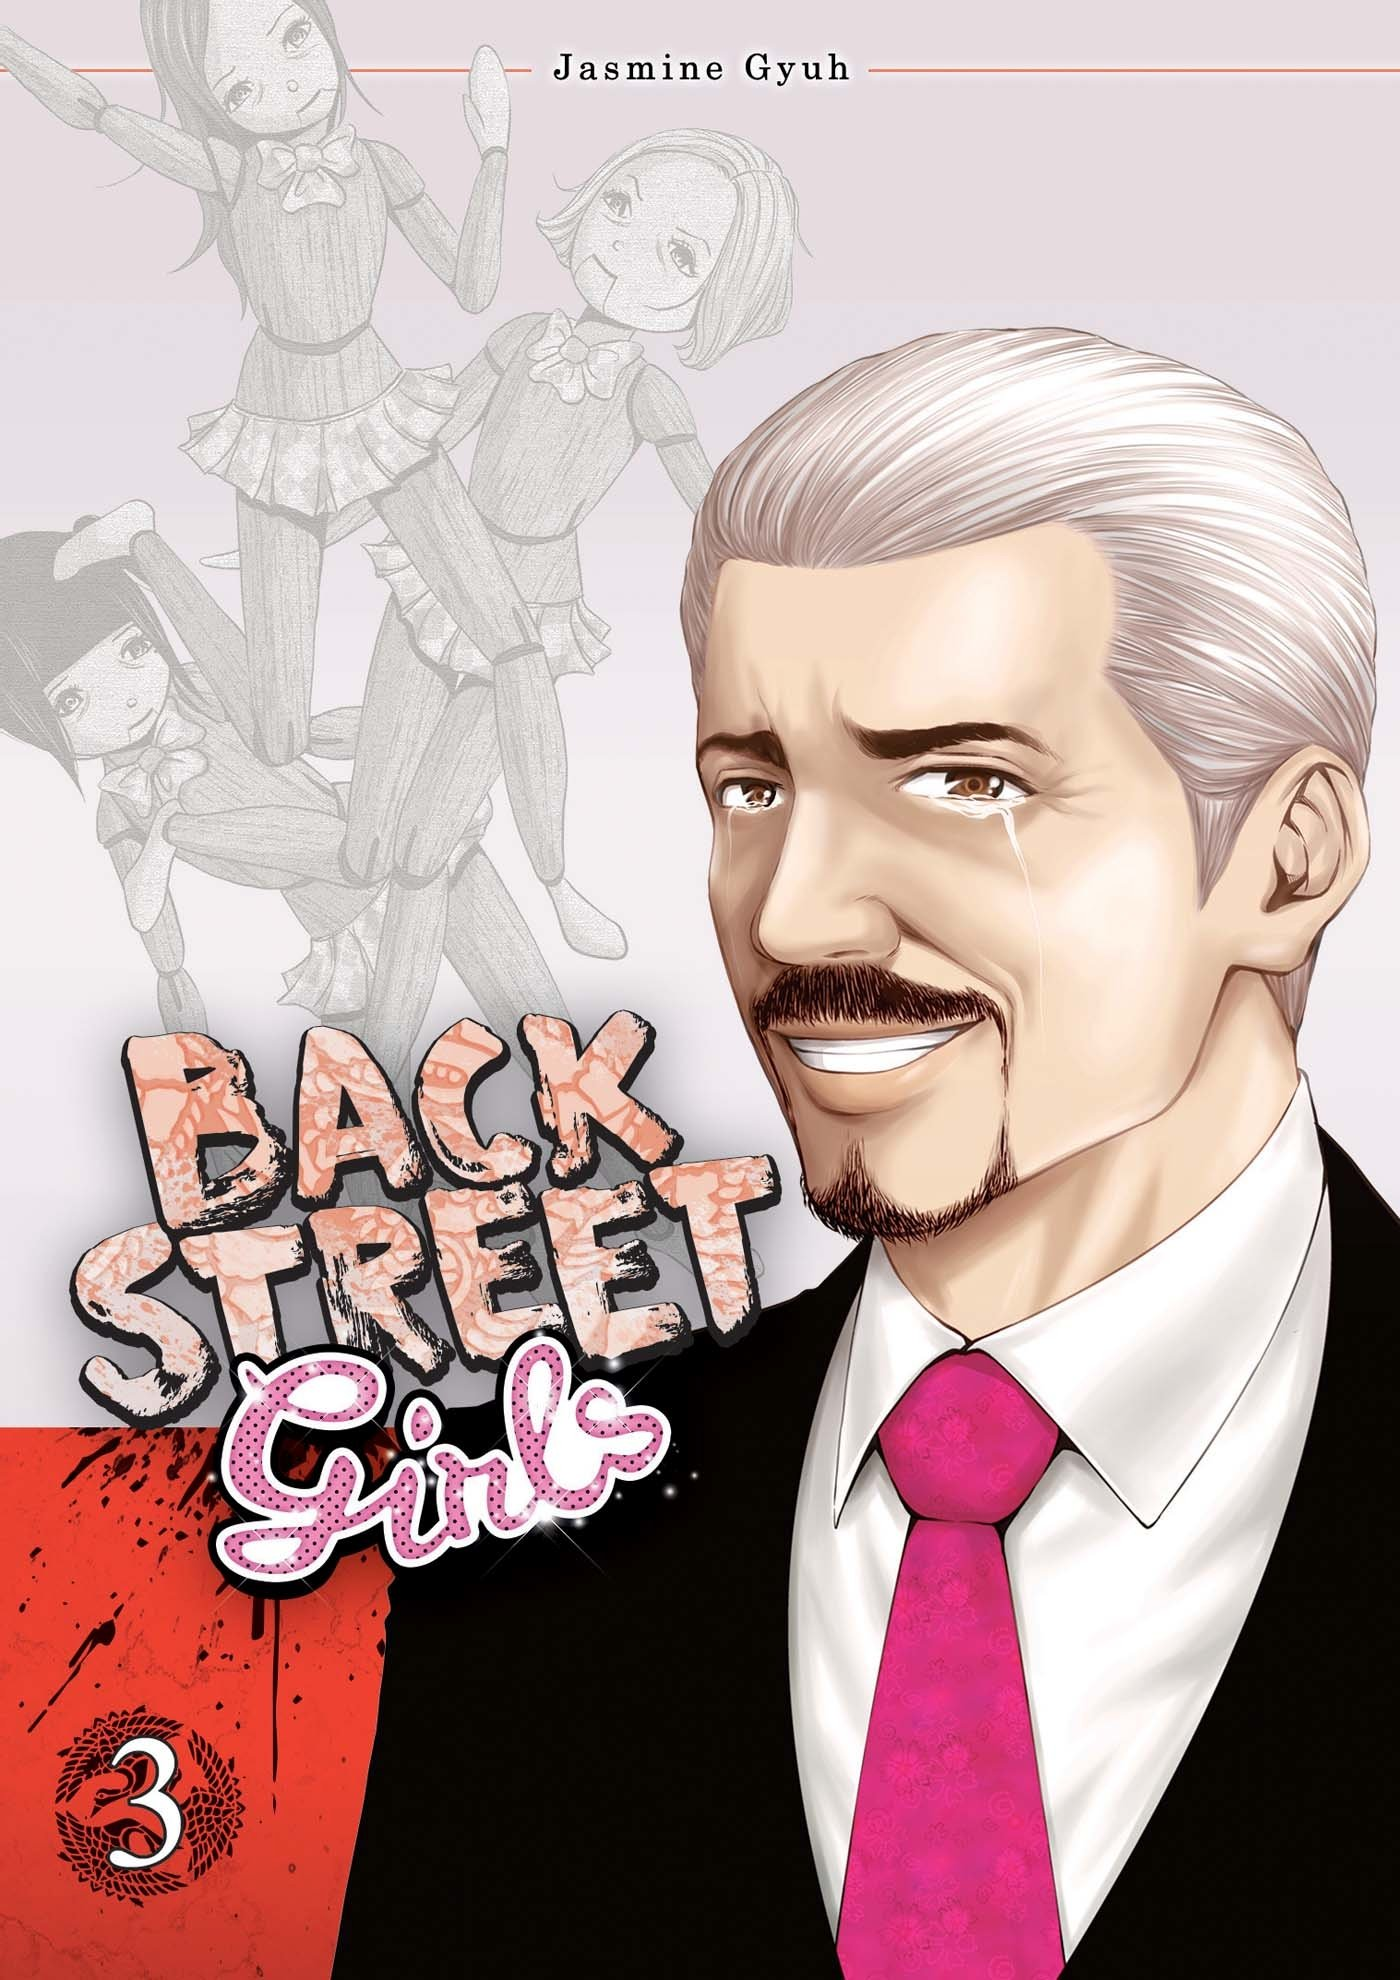 Back Street Girls 3